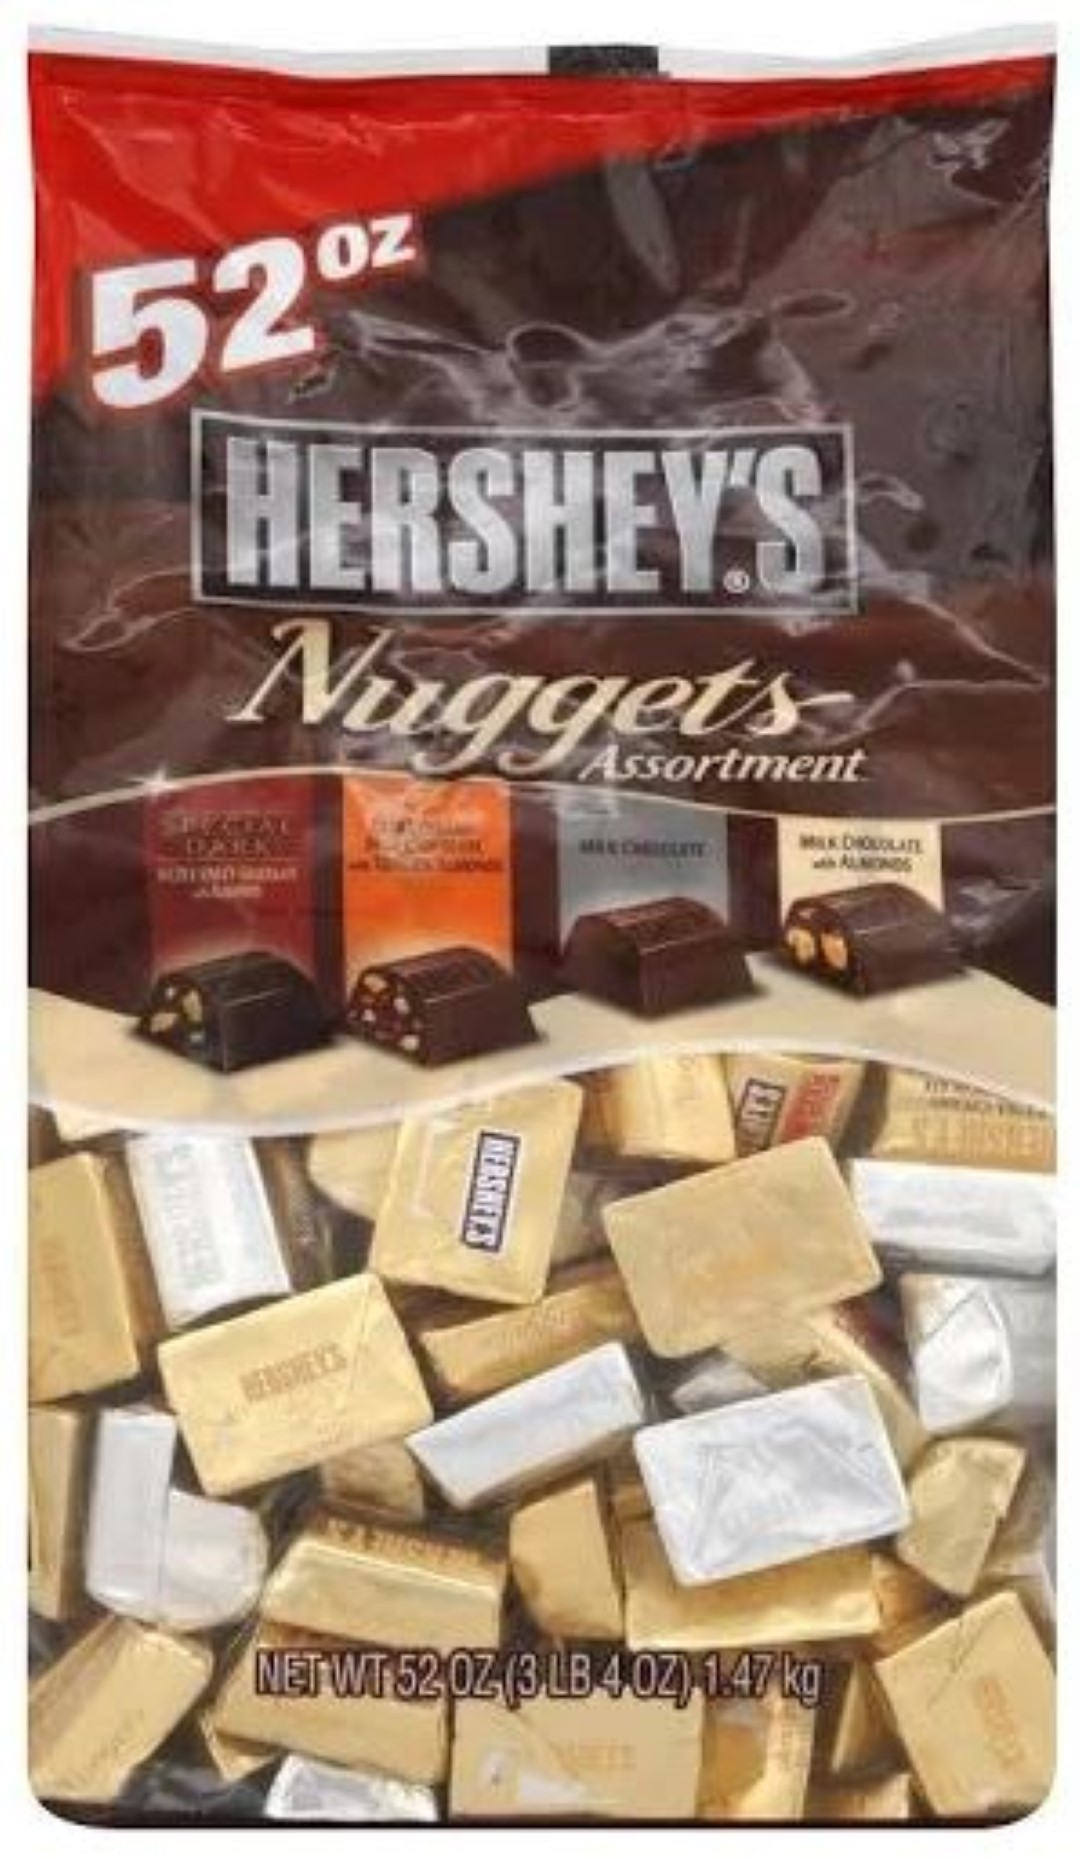 Hershey's Nuggets, Assortment - 52 oz bag